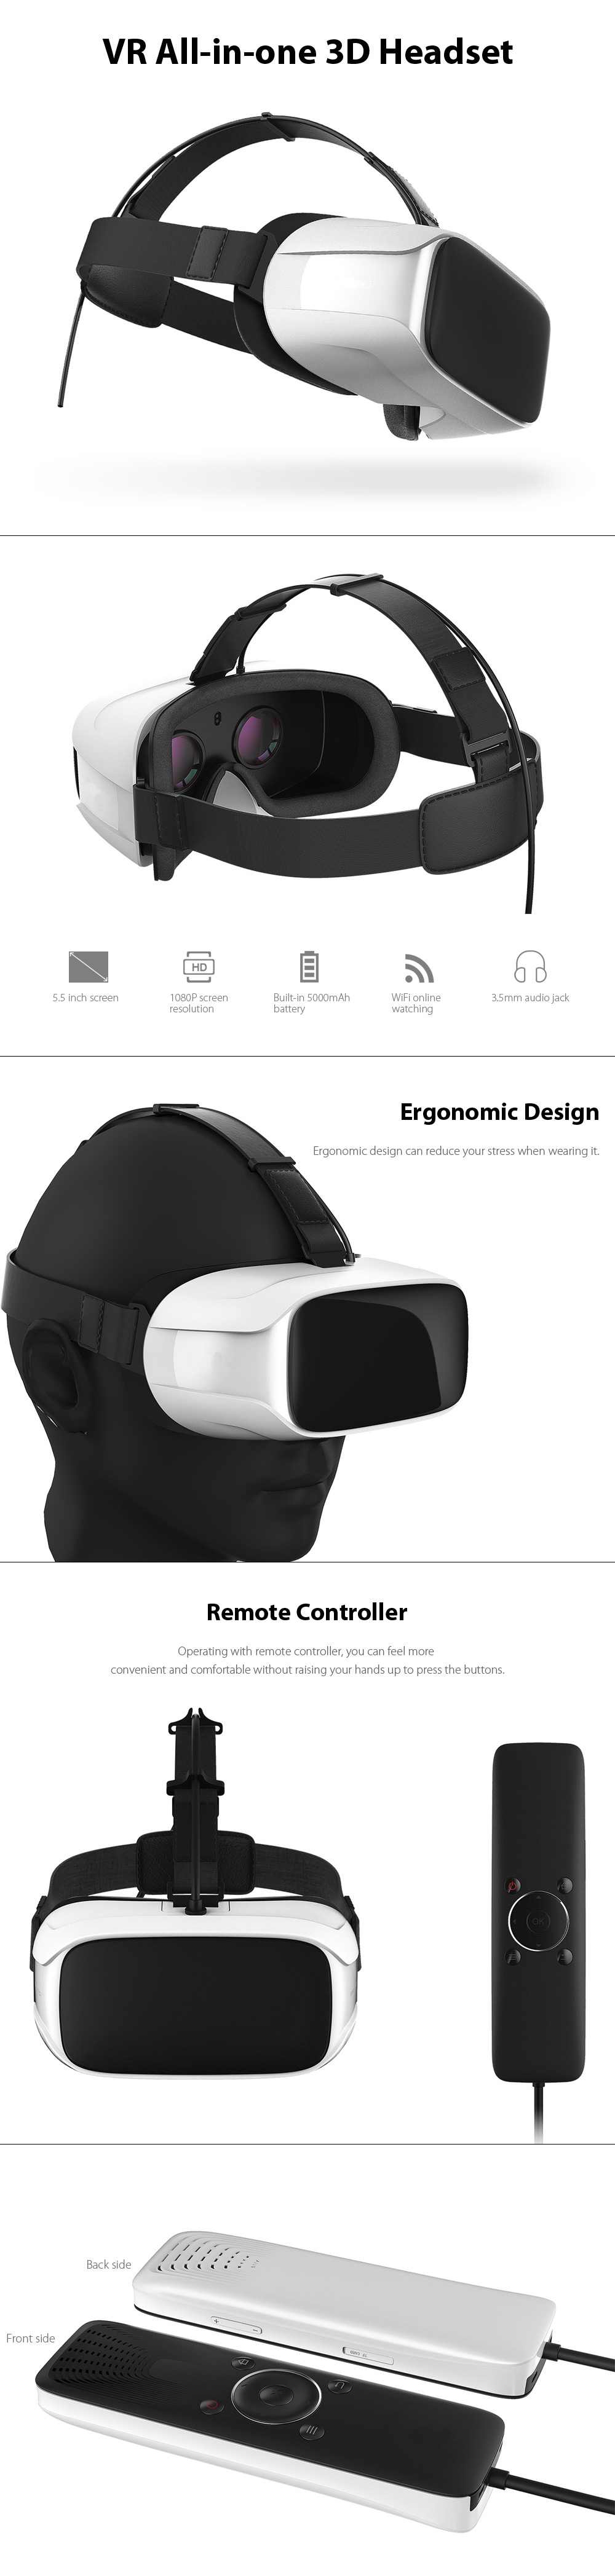 5.5 inch 1080P FHD VR All-in-one 3D Headset with INTEL CPU Remote Controller